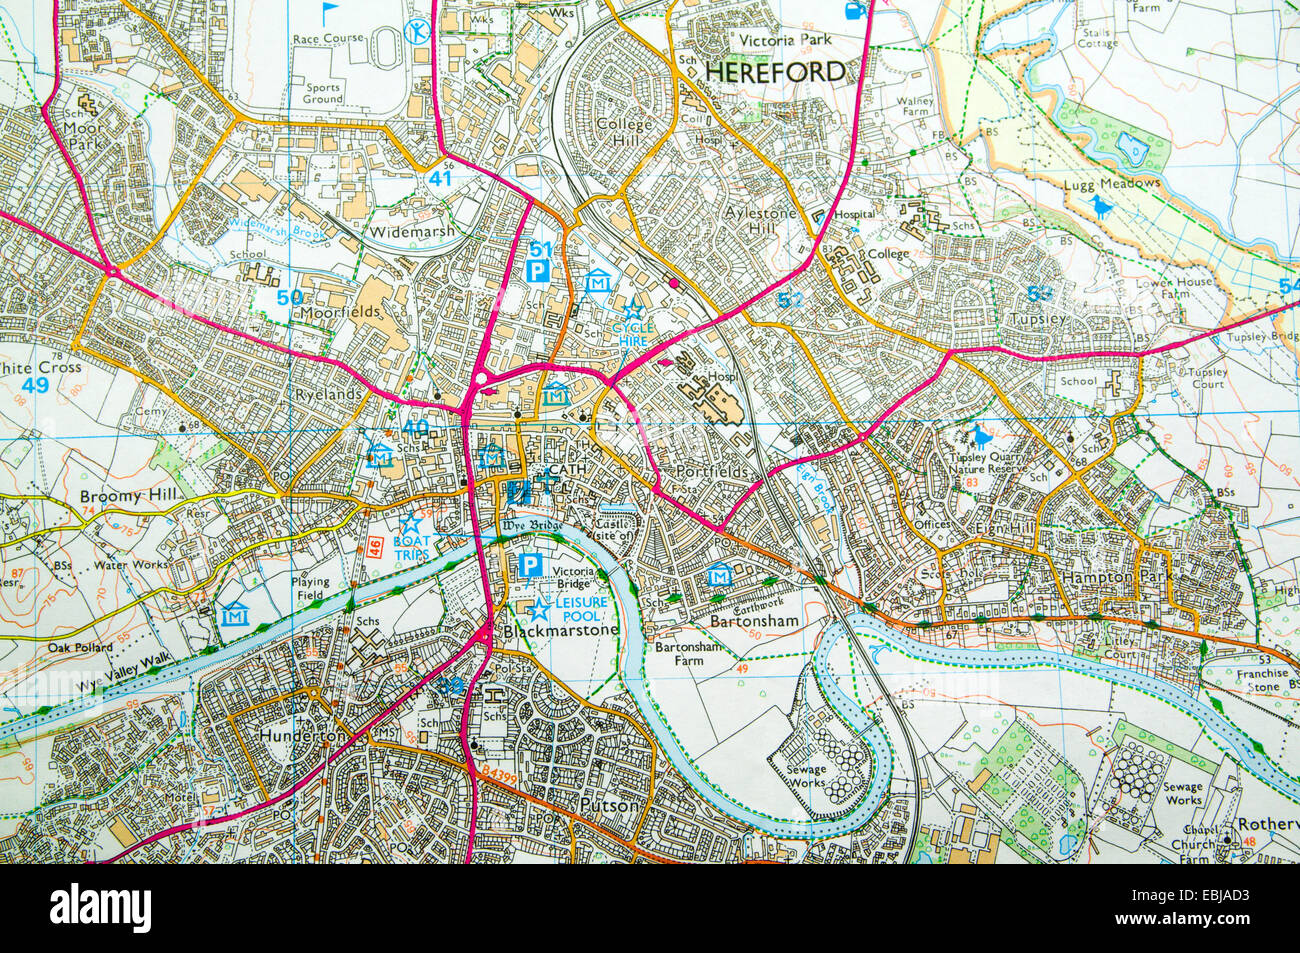 Map Of Hereford Ordnance Survey Map of Hereford, England Stock Photo: 76006031   Alamy